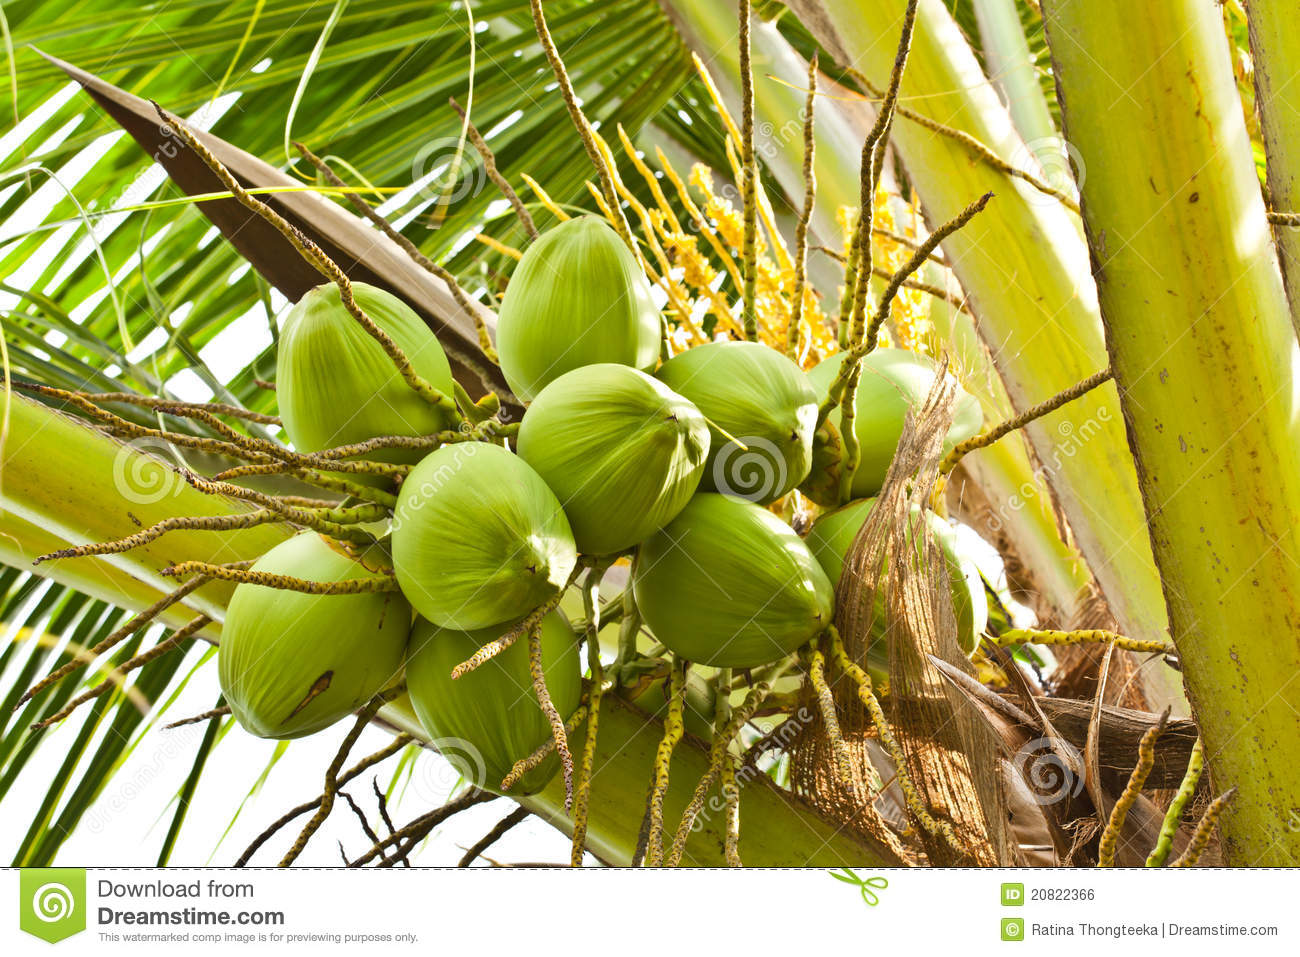 how to get juice from green coconut